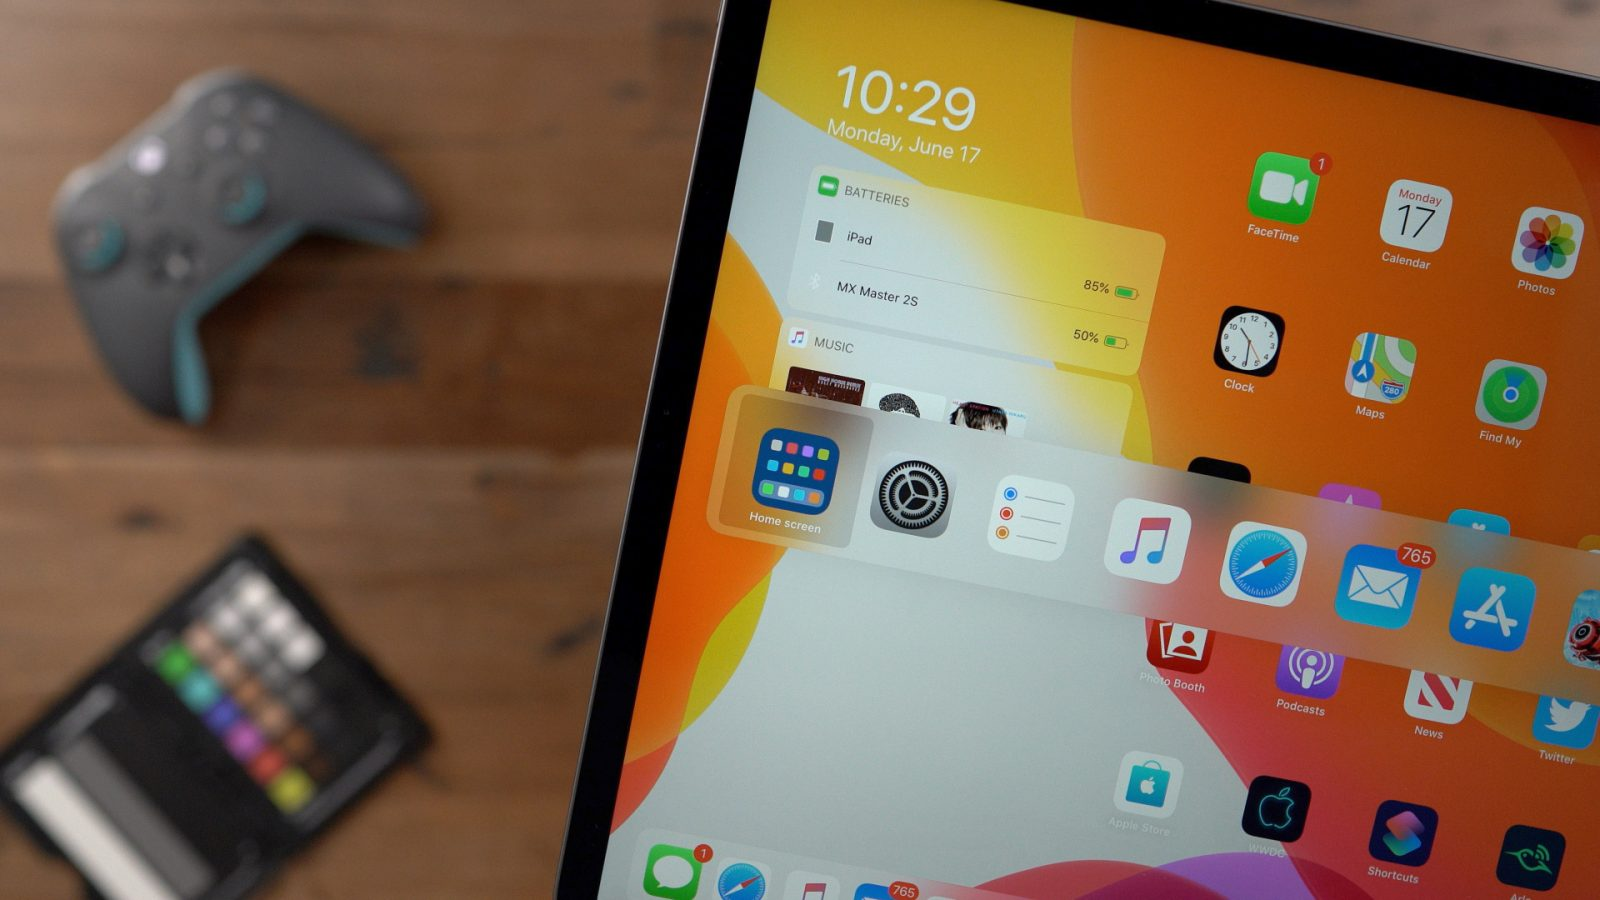 Hands-on with iOS 13 beta 2 new changes and features [Video]